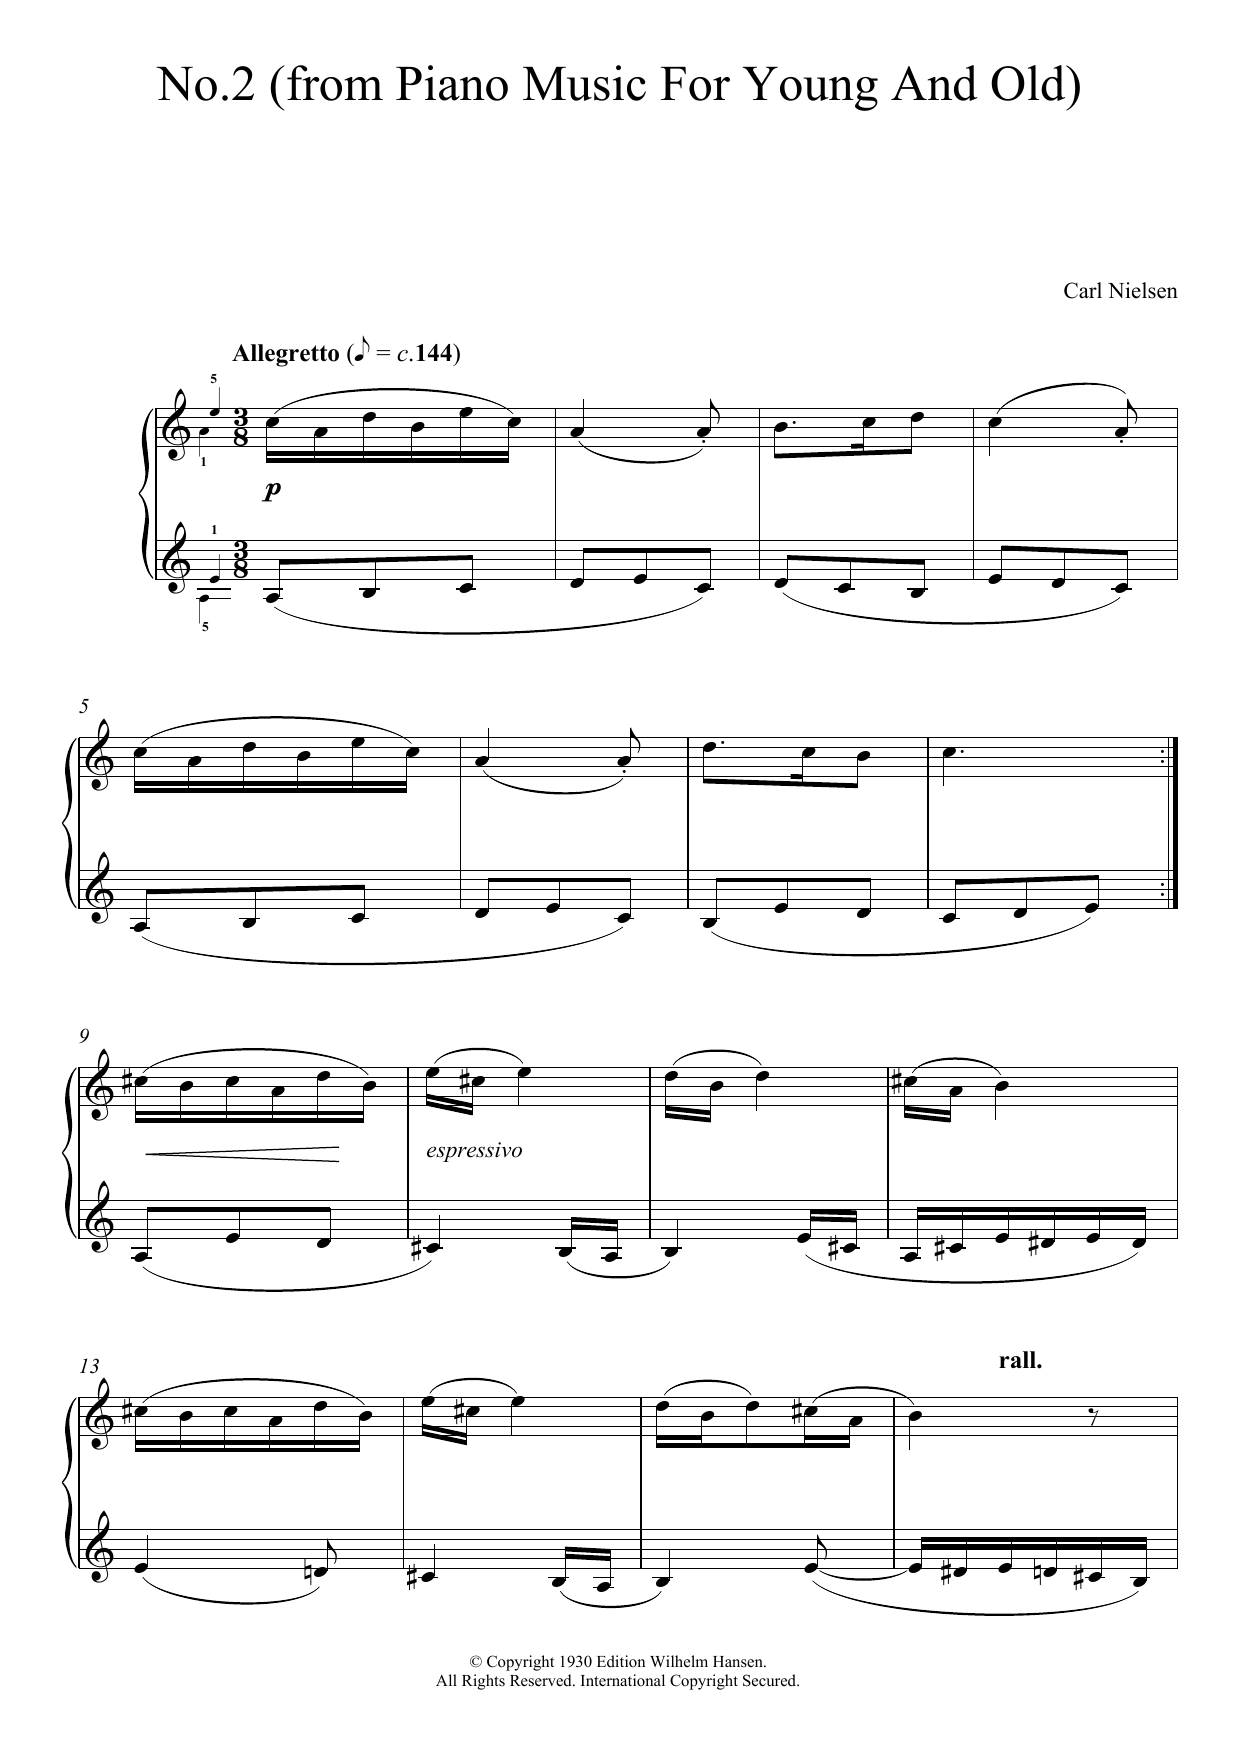 No. 2 (from 'Piano Music For Young And Old') Sheet Music